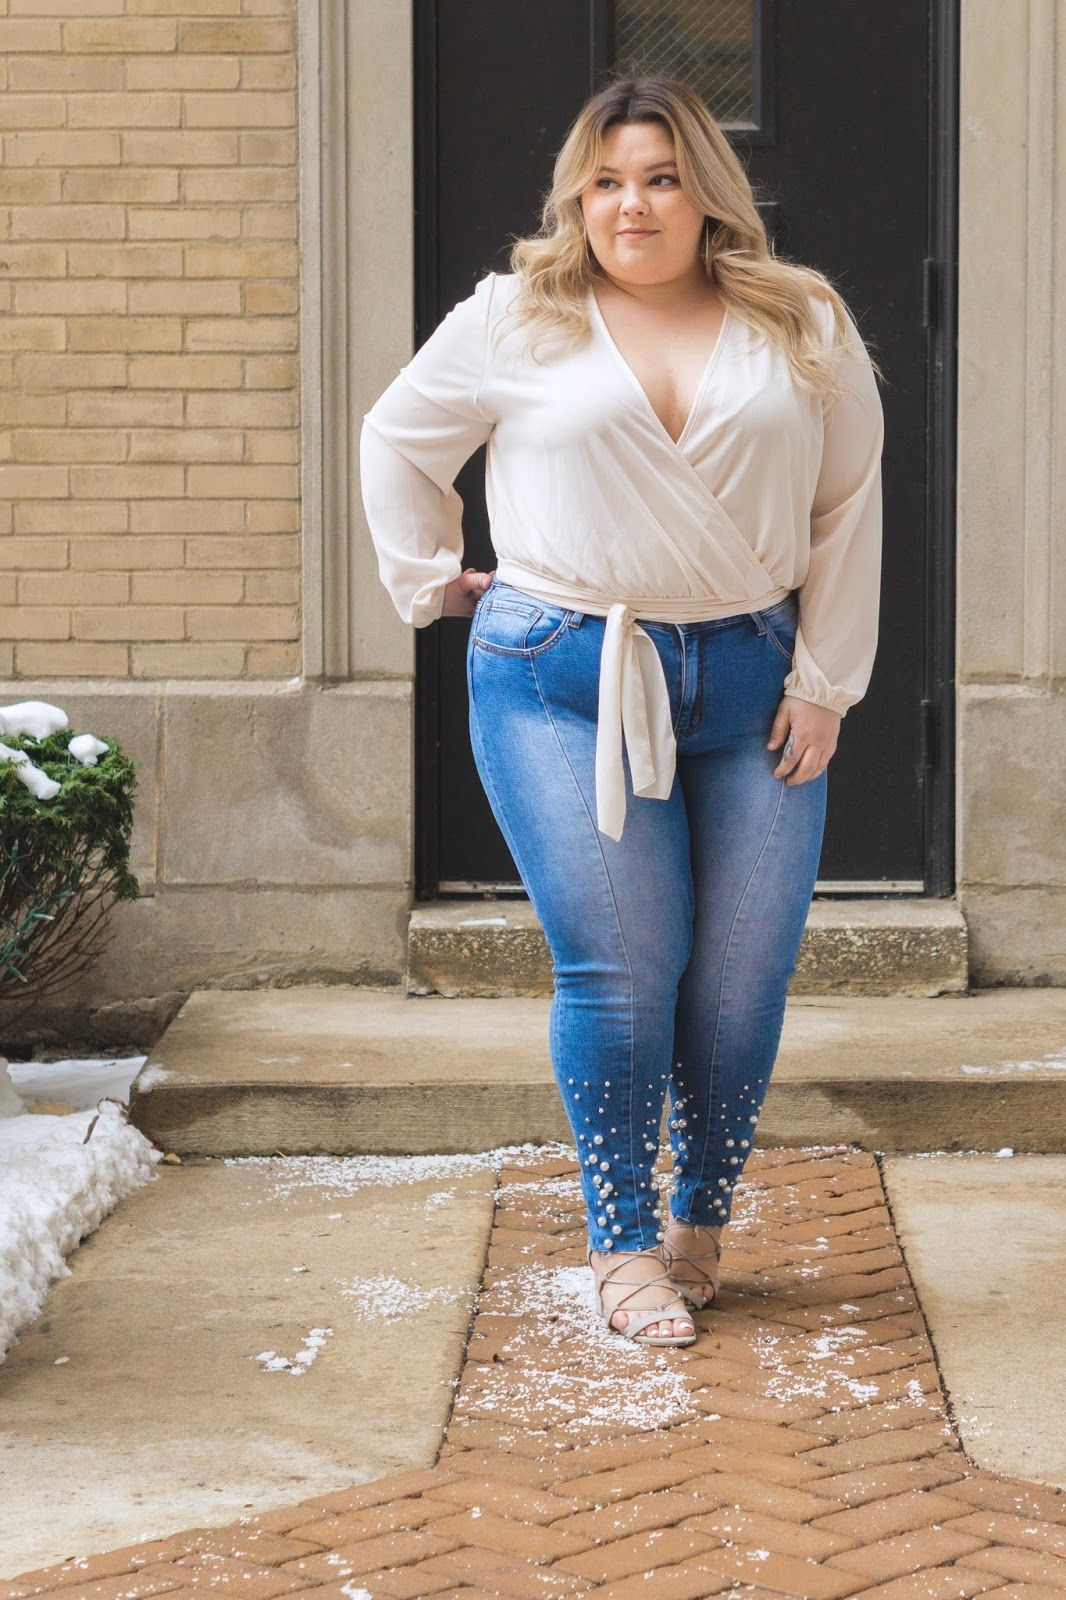 c2e78706f43ef Chicago Plus Size Fashion Blogger Natalie Craig reviews Fashion Nova  Curve s little white lies wrap top and private jet high rise skinny jeans.